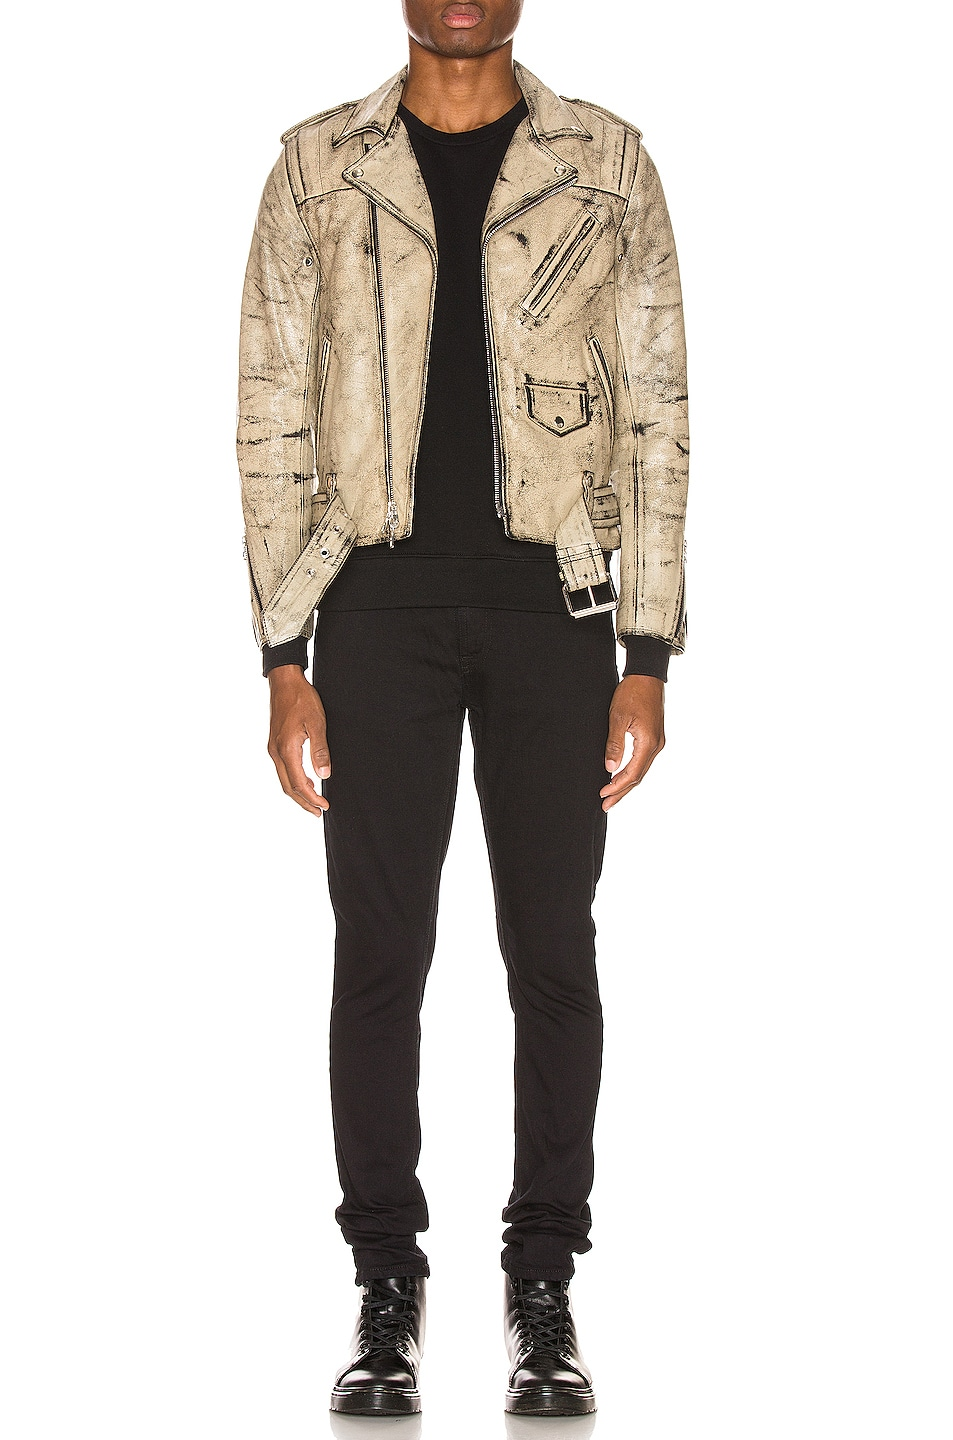 Image 6 of JOHN ELLIOTT x Blackmeans Rider's Jacket in Black & Ivory Paint